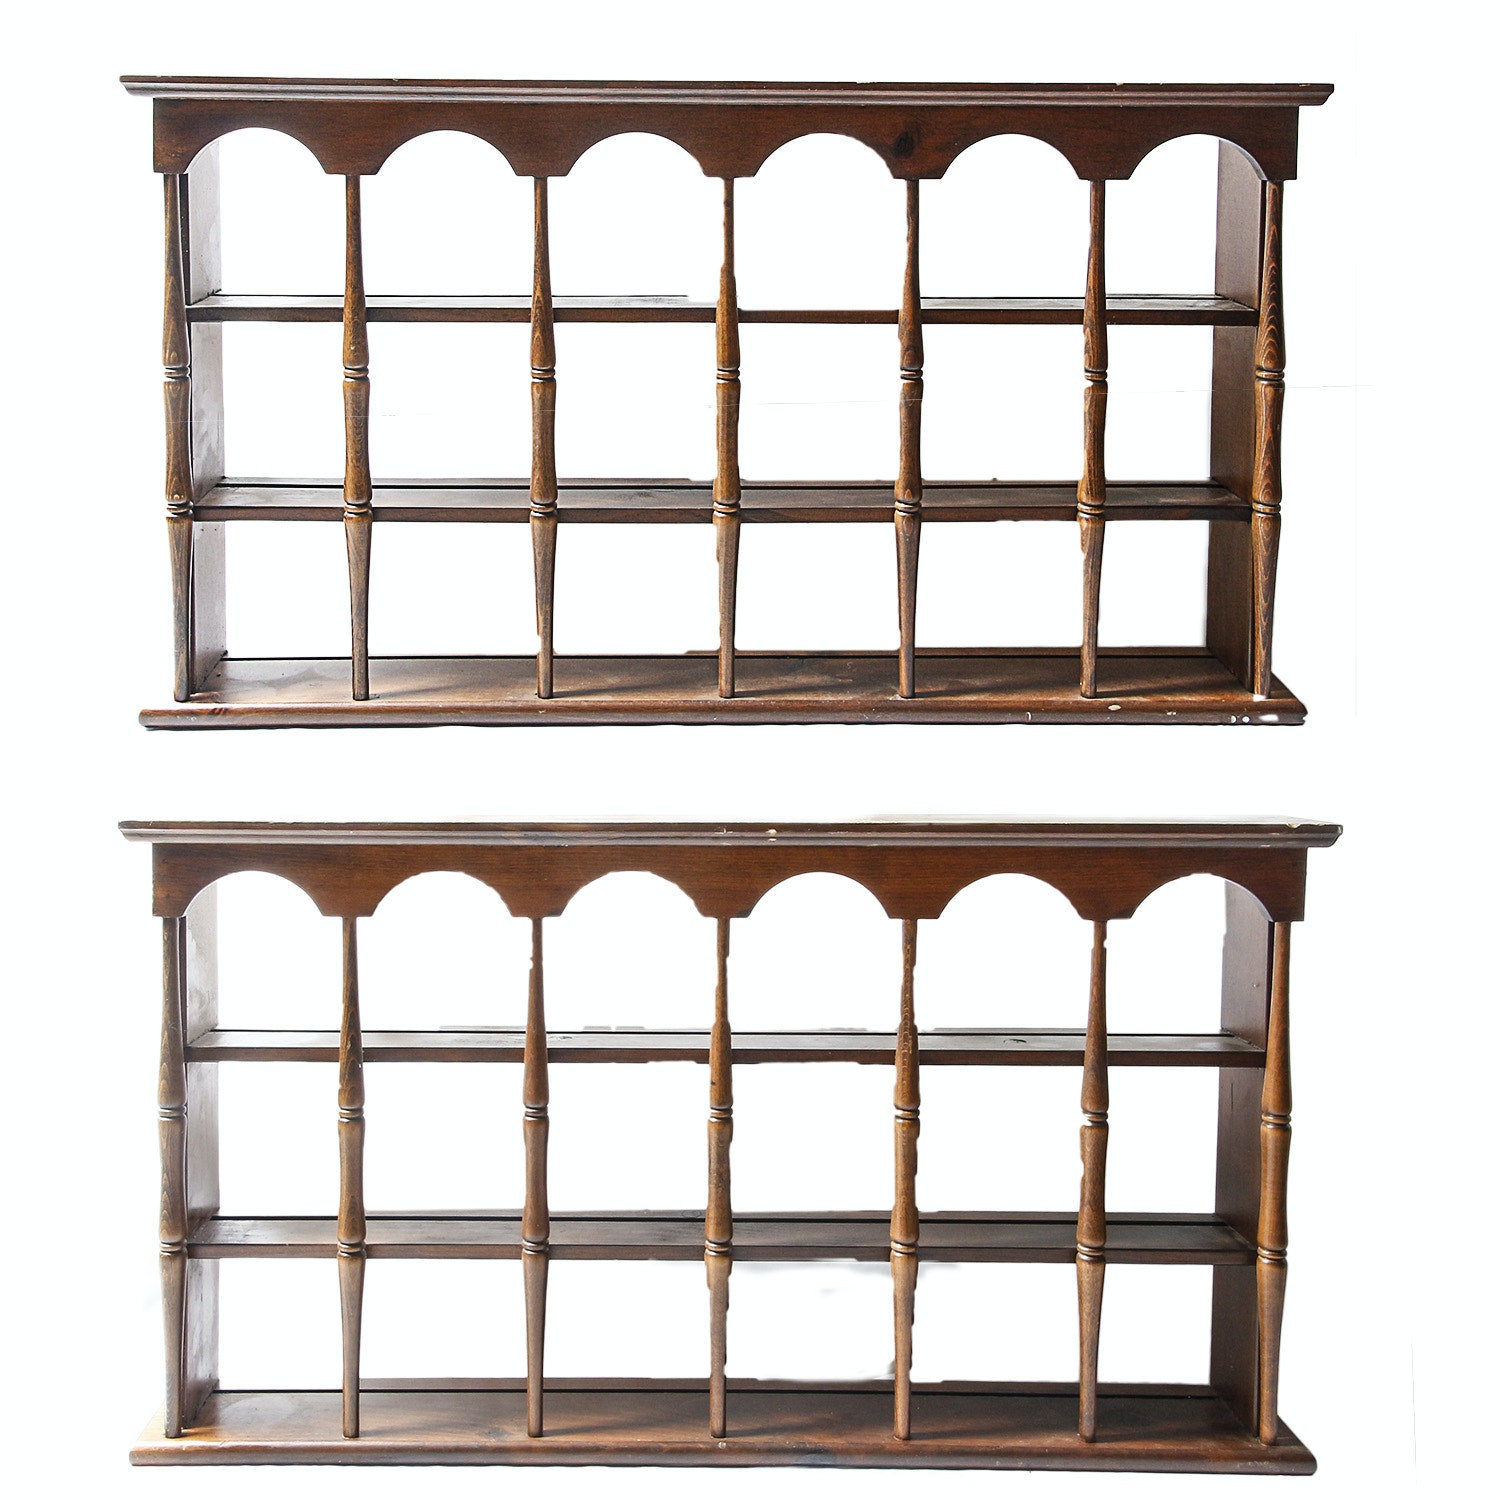 Pair of Wooden Plate Display Shelves